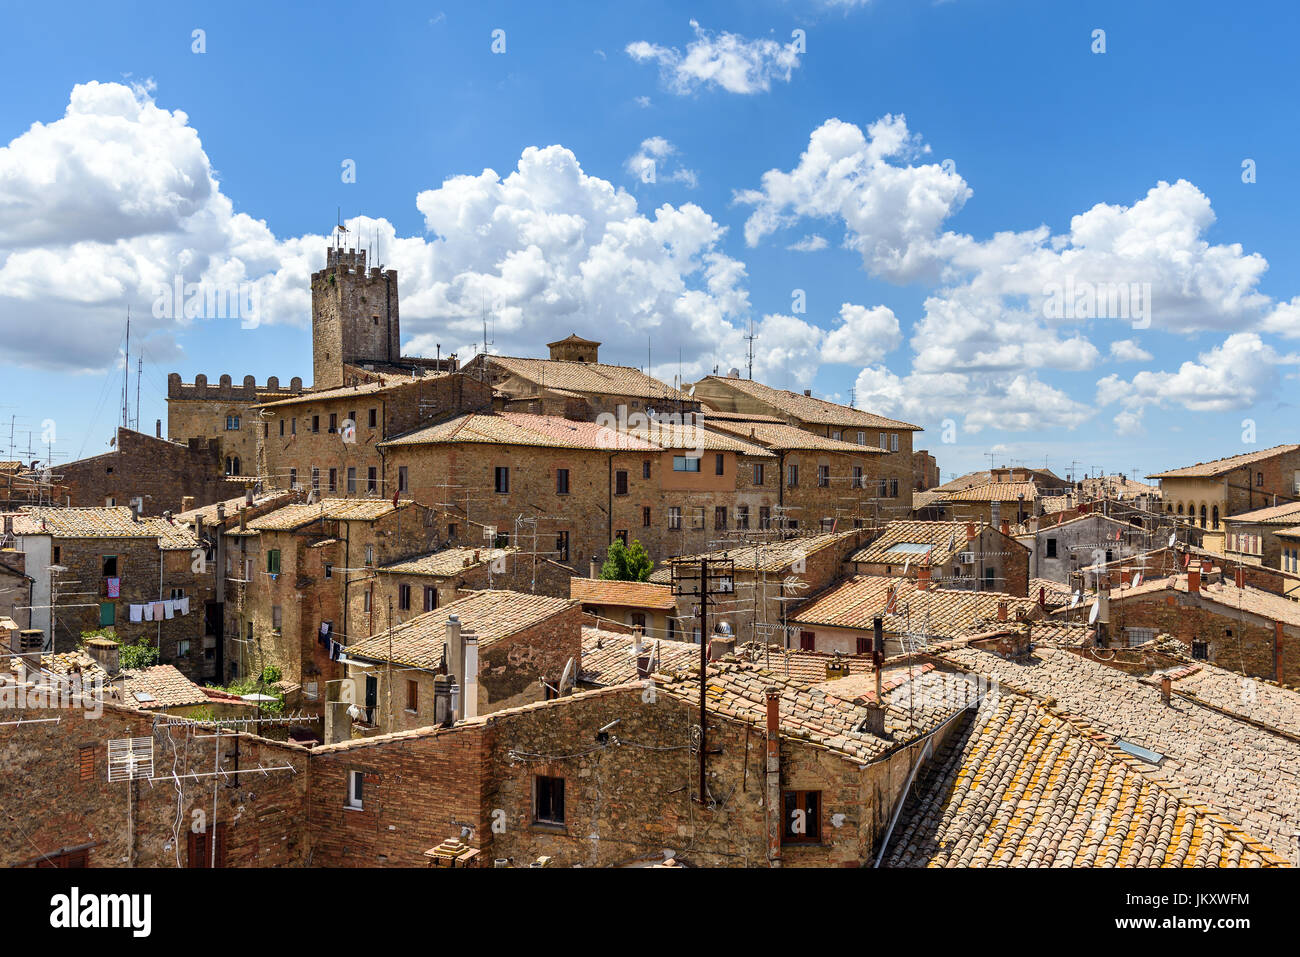 panoramic view of old town of Volterra, tuscany, italy - Stock Image